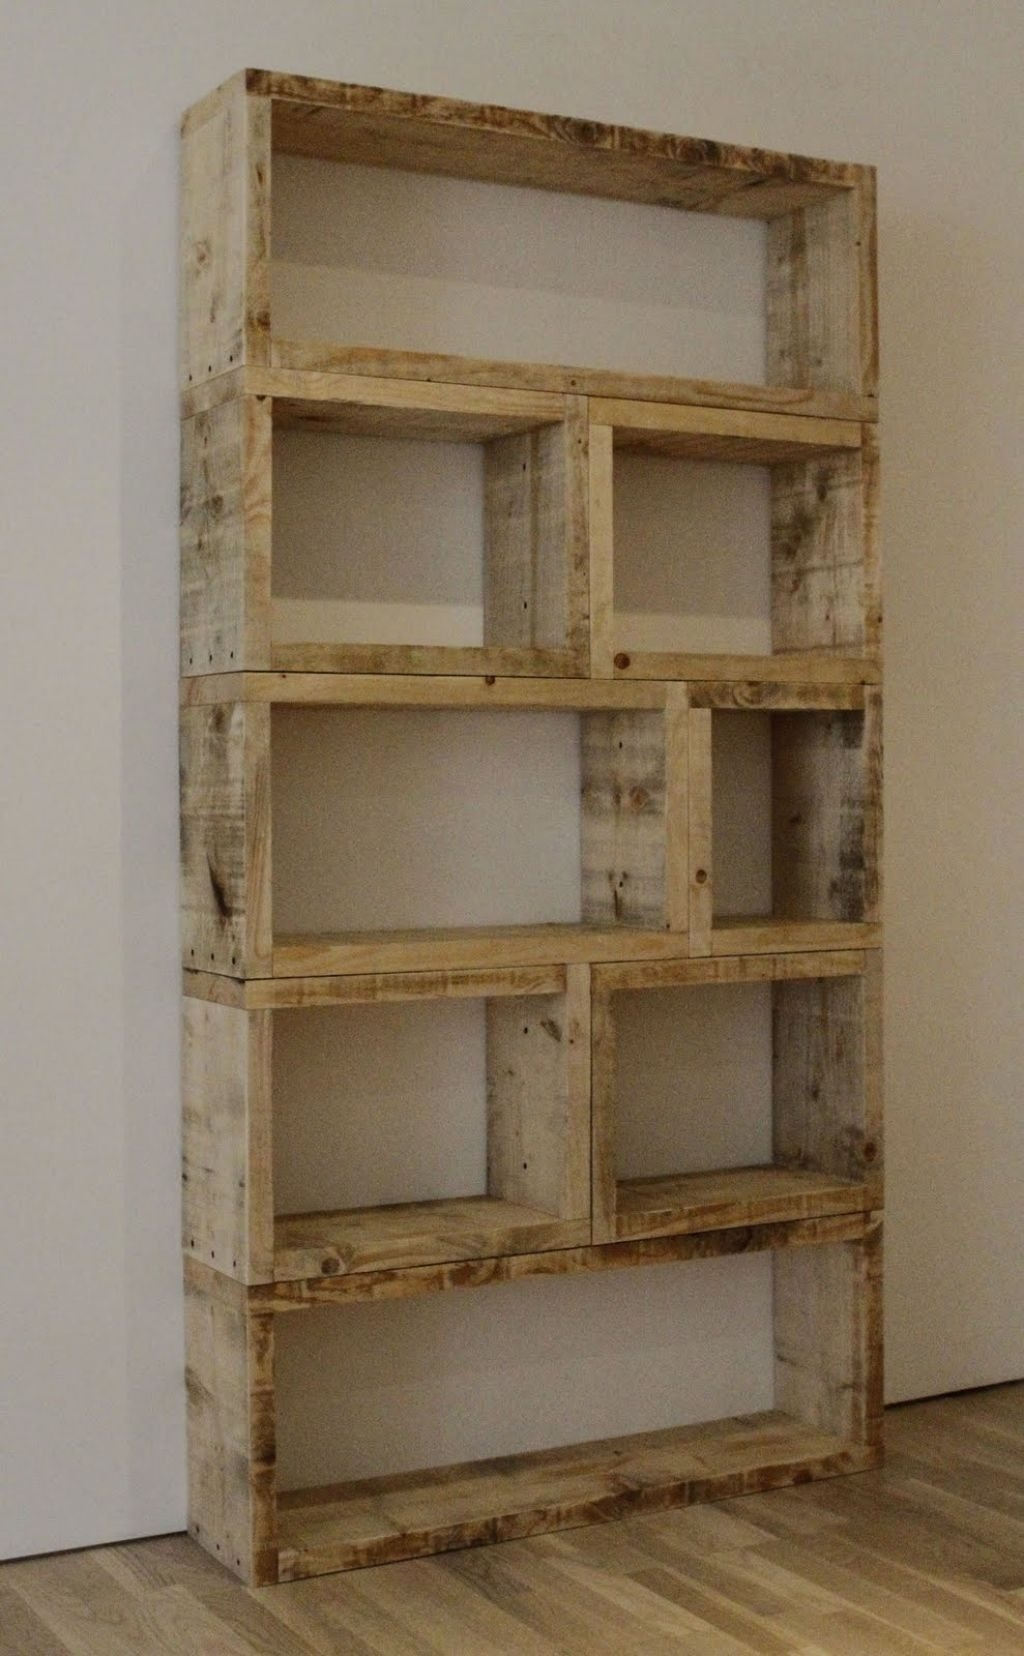 Wooden Handmade Bookshelves Create Your Handmade Bookshelves Throughout Handmade Bookshelves (#15 of 15)